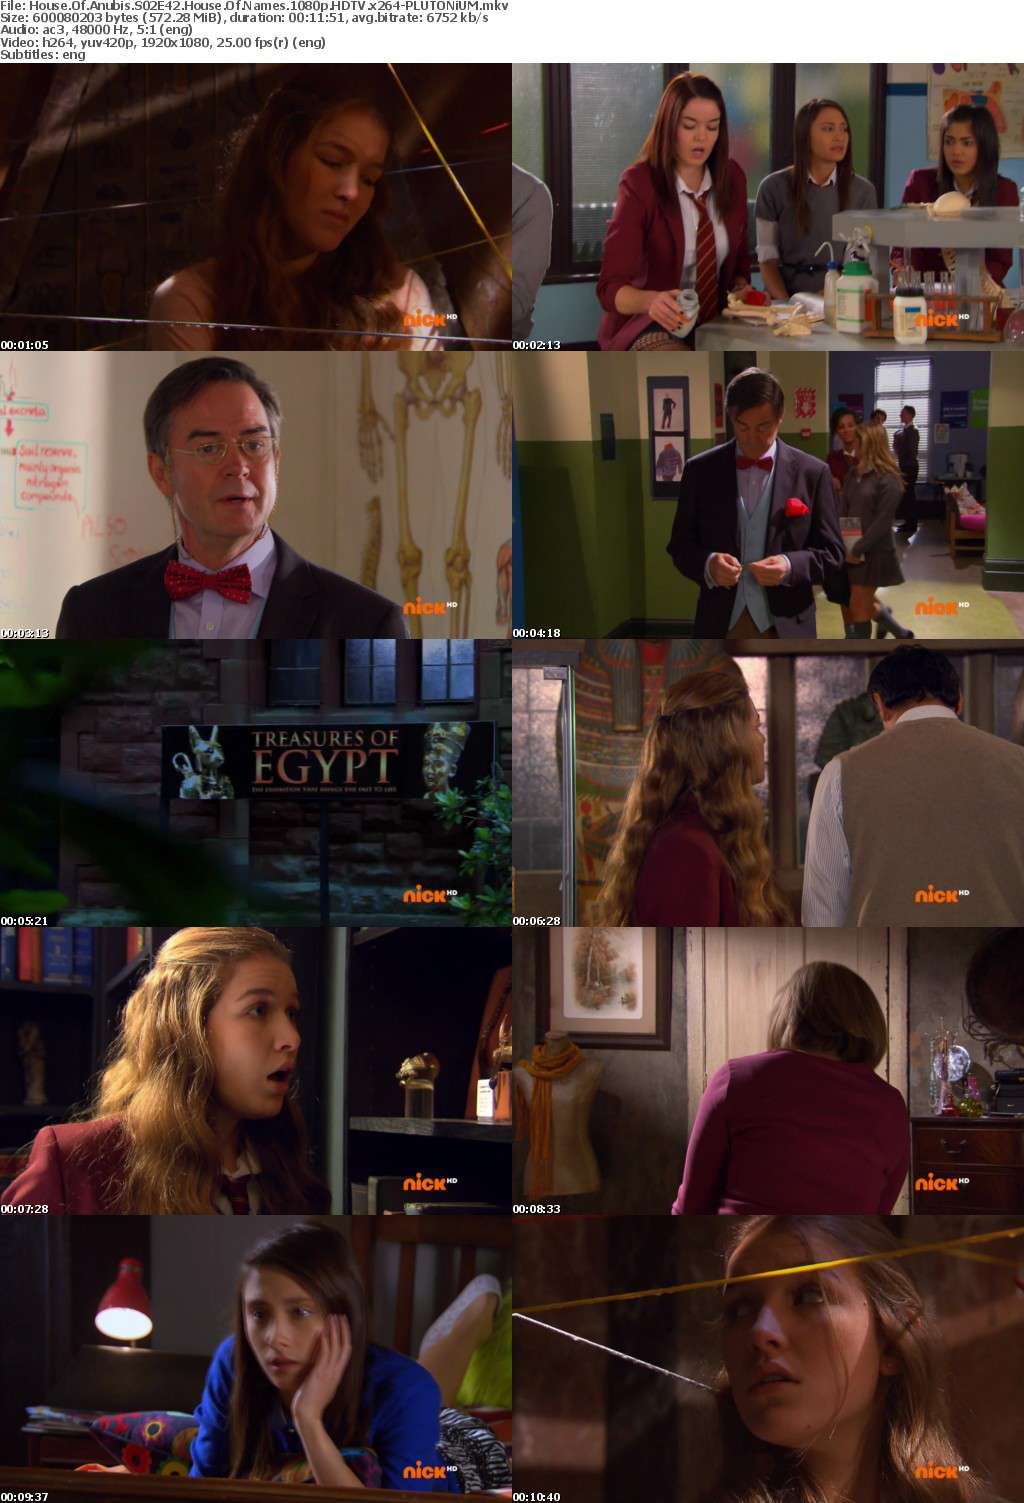 House Of Anubis S02E42 House Of Names 1080p HDTV x264-PLUTONiUM